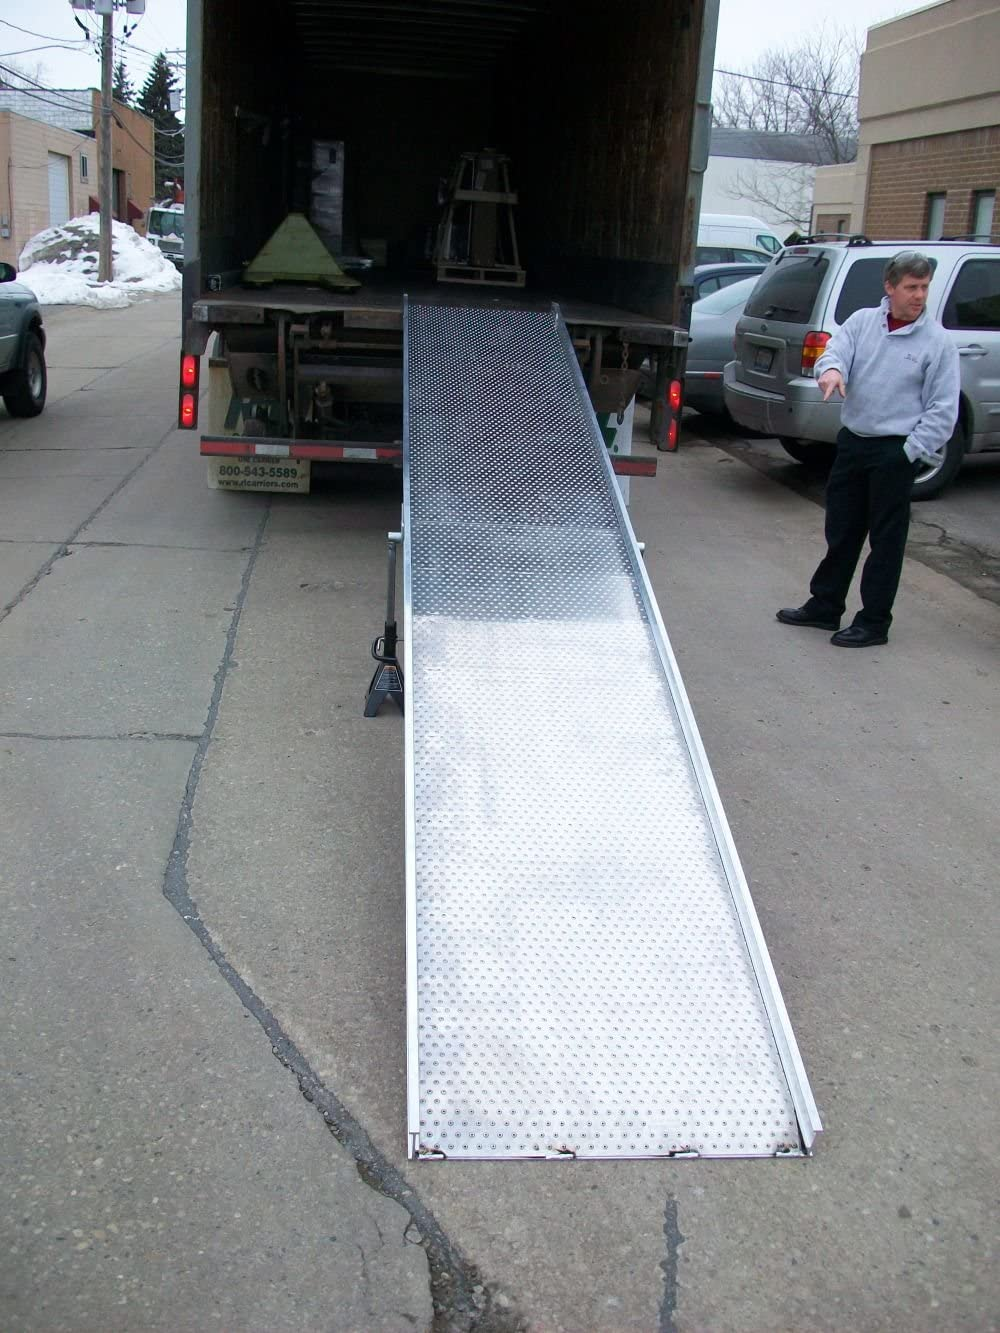 Handi-Ramp Portable Delivery Truck Tractor Trailer Ramp 12ft x 24 750lb Capacity